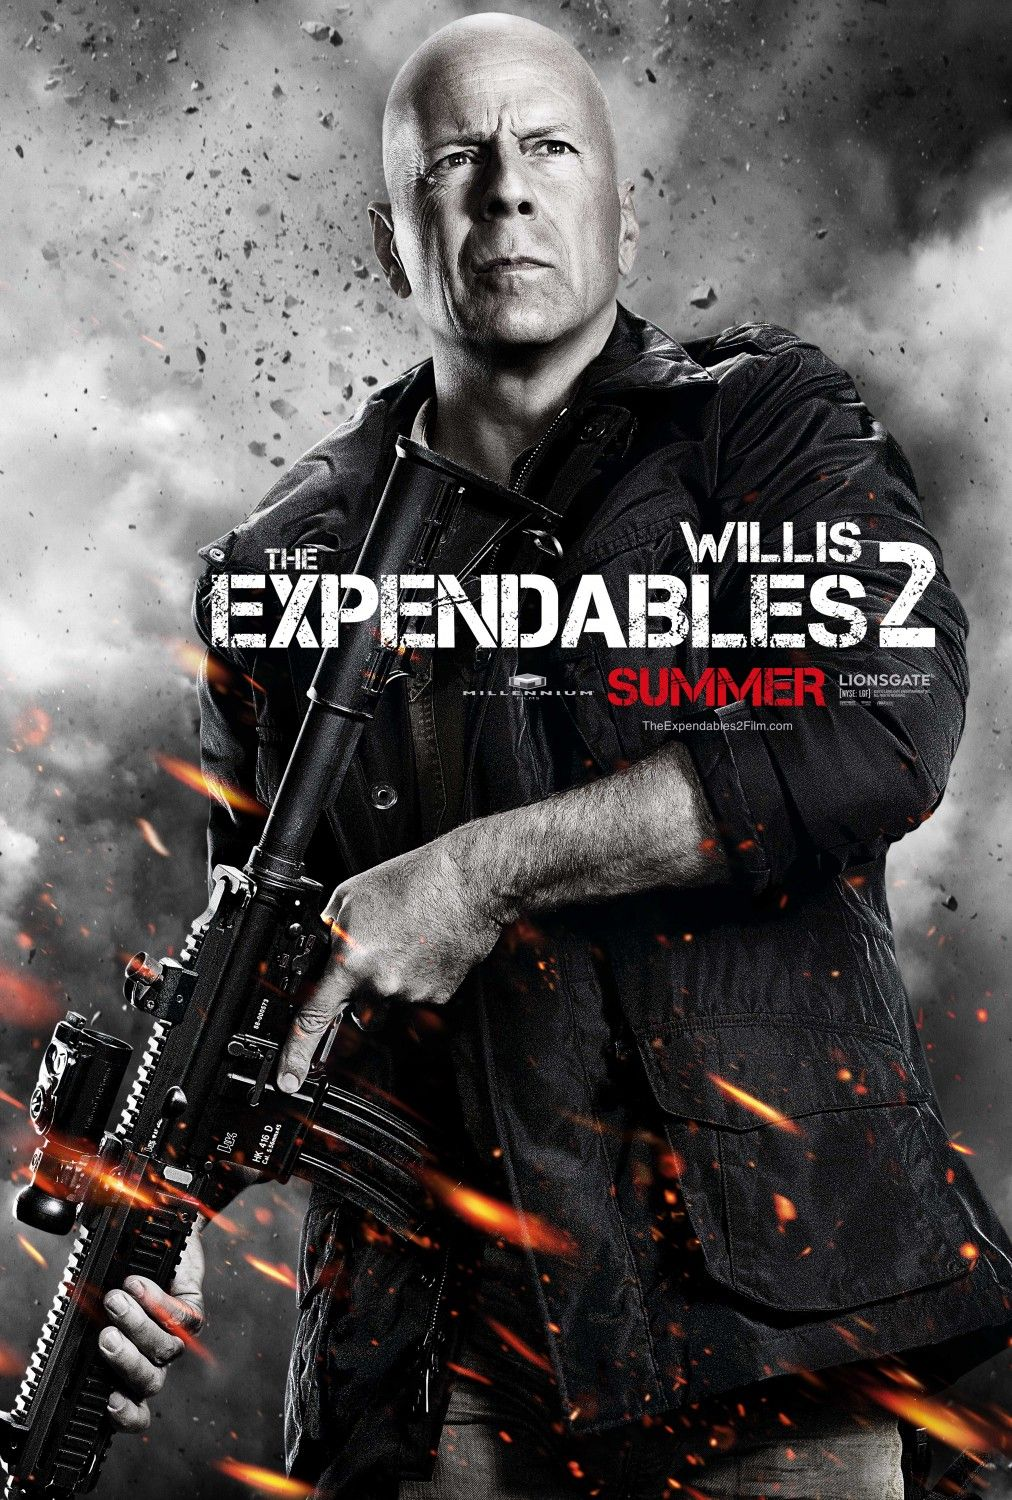 Expendables 2 - Bad Ass Poster Version!